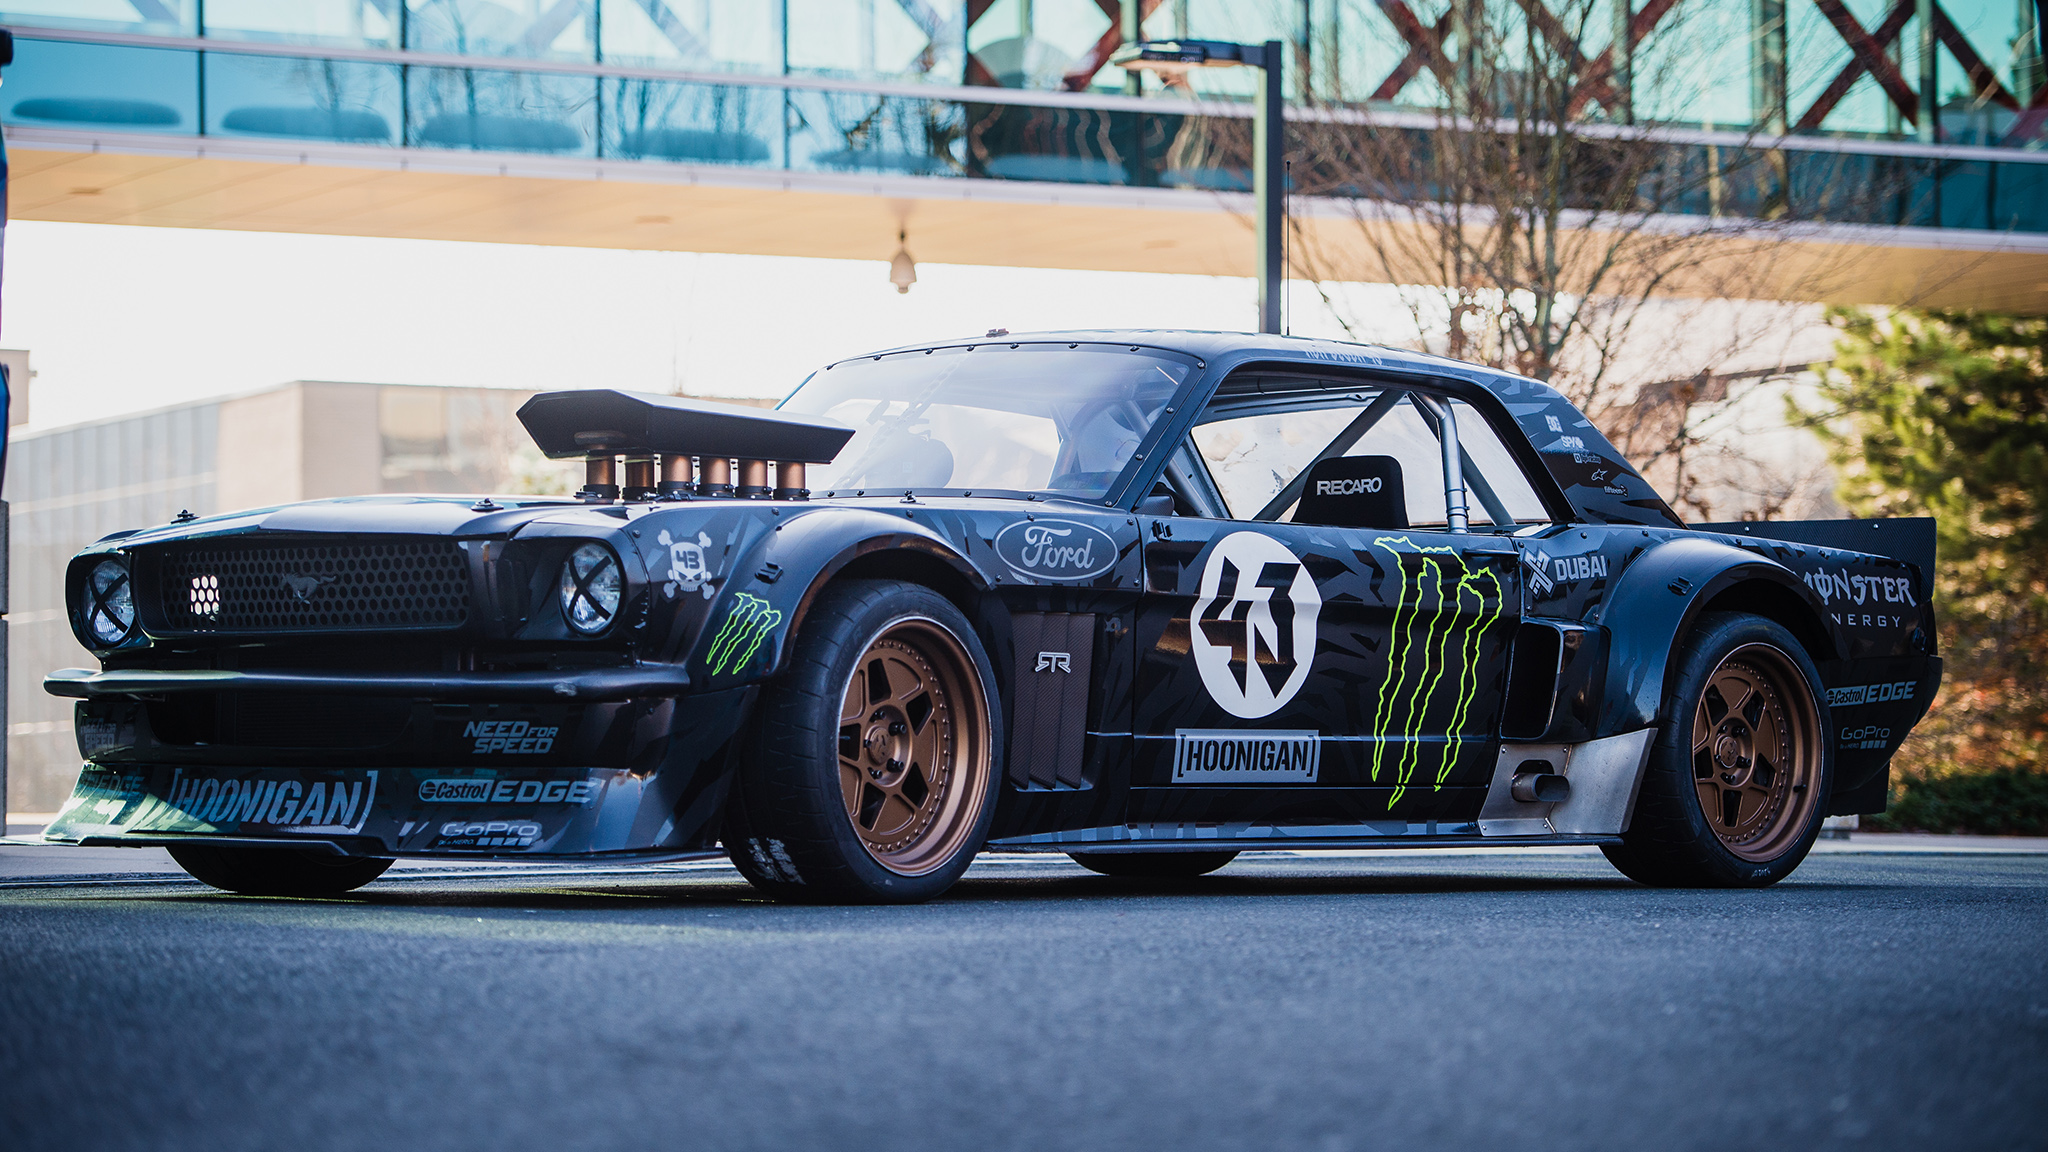 Ken Block S Official X Games Athlete Biography